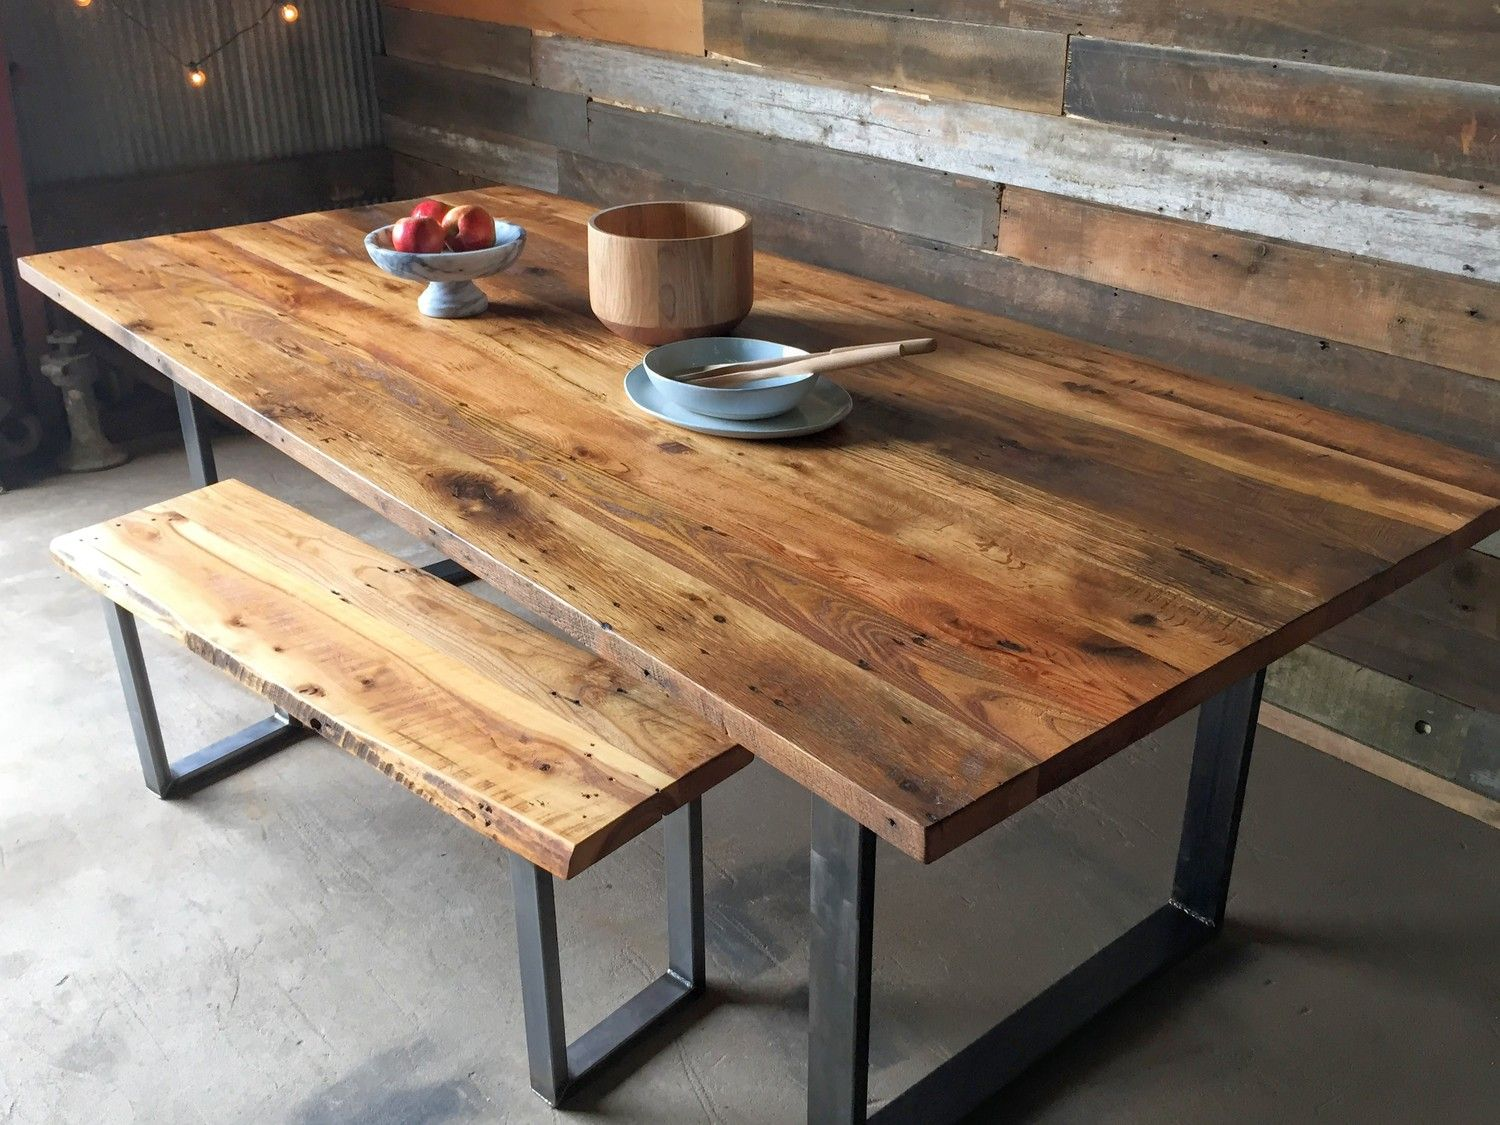 Dining table sets wood and metal dining tables wood and metal dining - Industrial Modern Dining Table U Shaped Metal Legs Reclaimed Wood